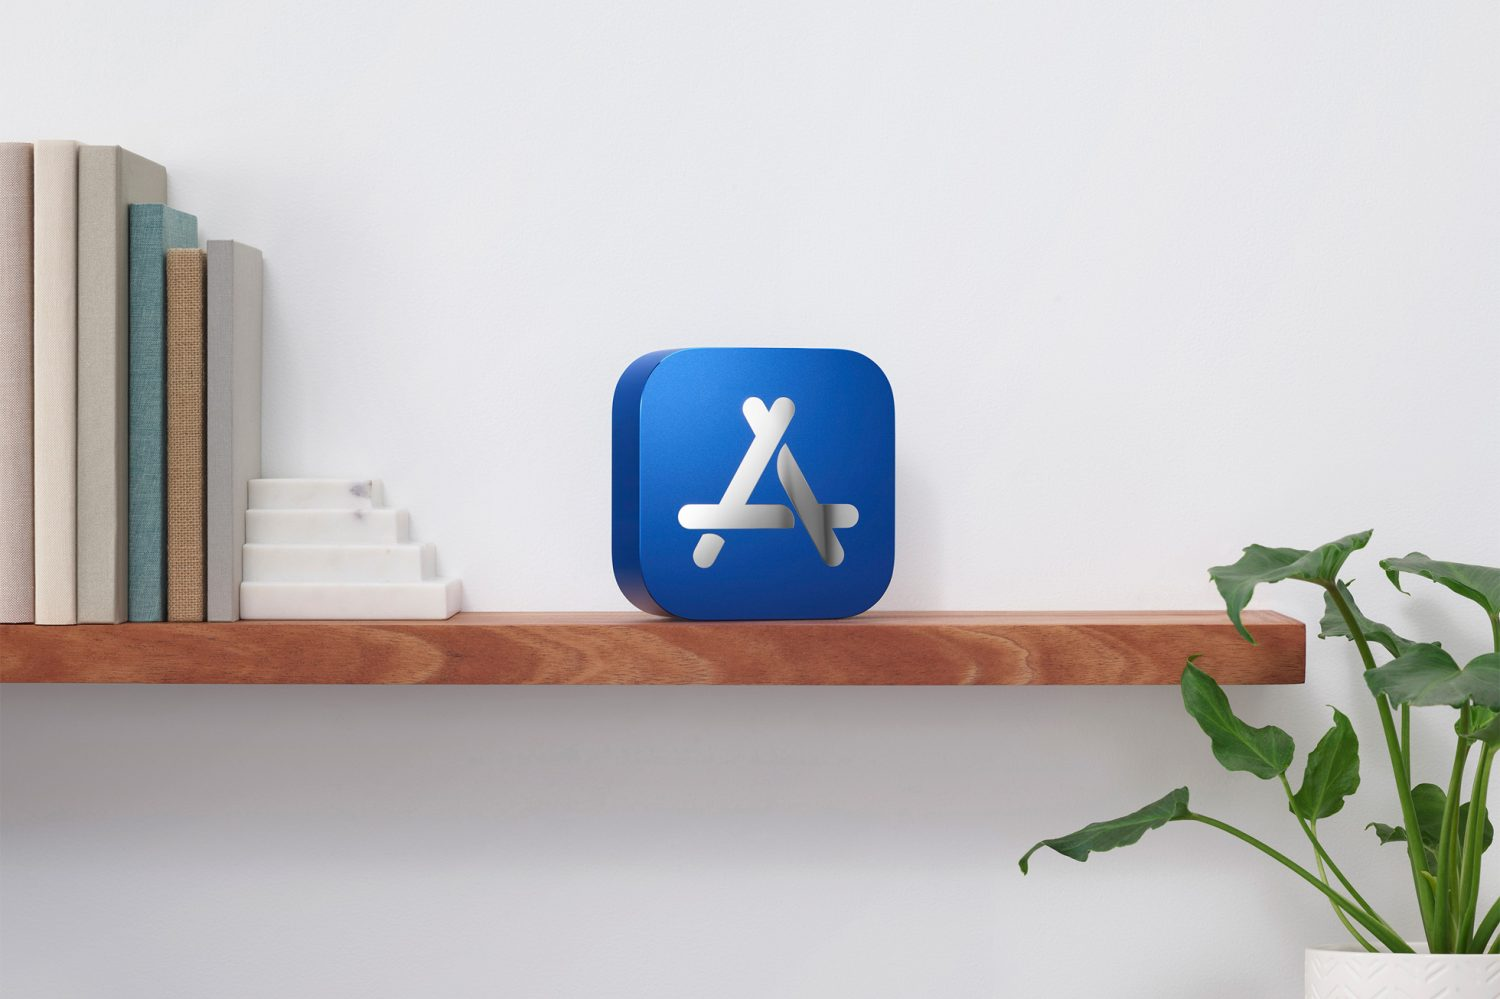 photo of Apple trophy for best apps 'the most exclusive Apple product of all time' image